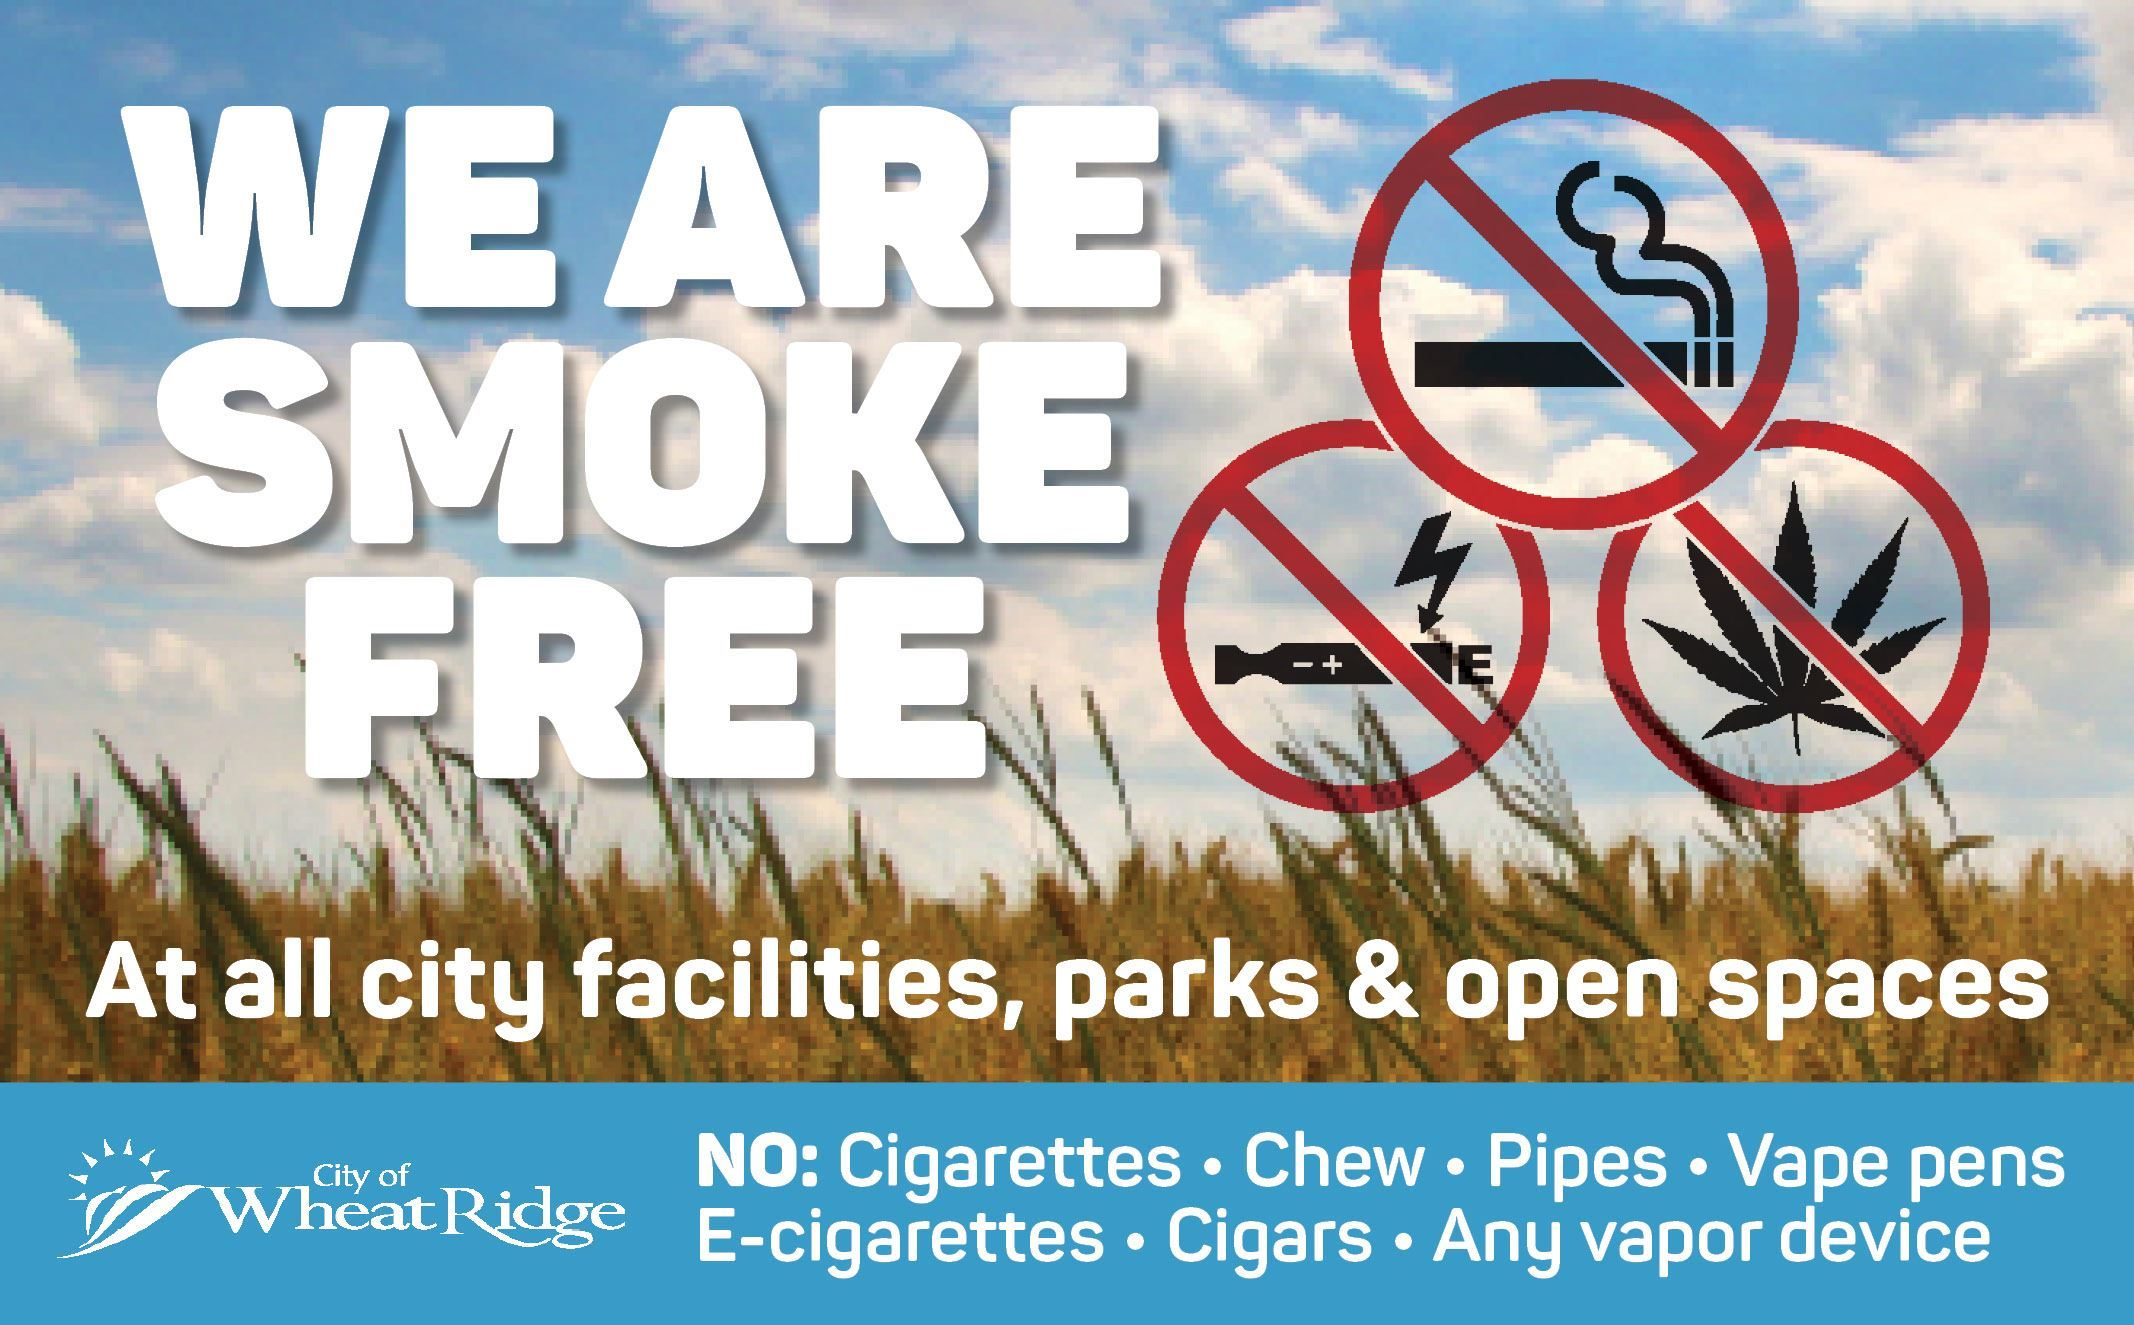 Smoke free sign for the City of Wheat Ridge